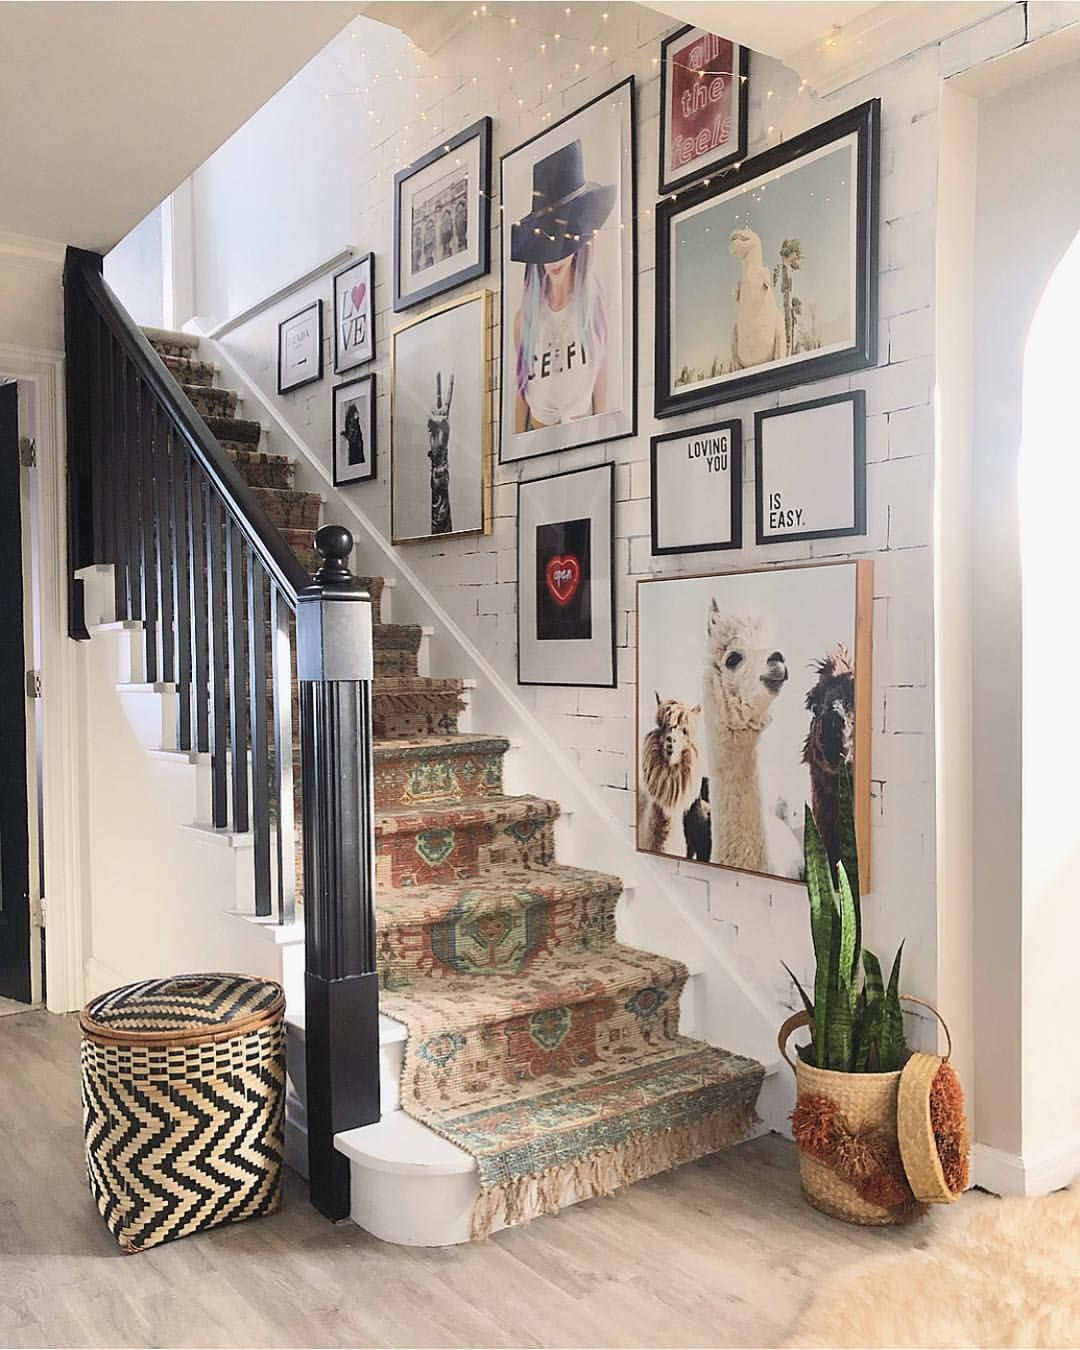 Decorating A Staircase Ideas Inspiration: Our Older Home Has Quite The Interesting Layout. This